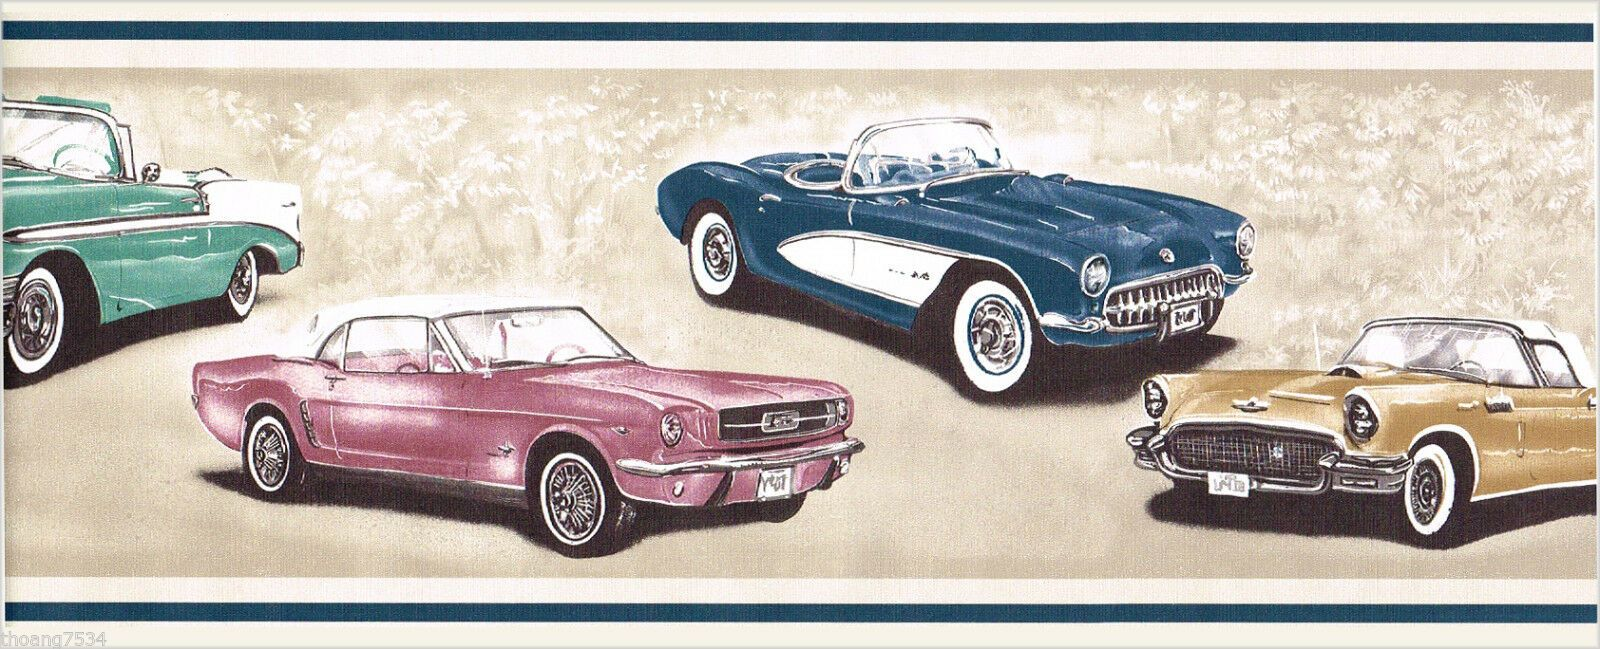 Vintage Classic Car Chevy Corvette Ford Thunderbird Mustang Wall Paper Border For Sale Online Classic Cars Chevy Classic Cars Vintage Thunderbird Car